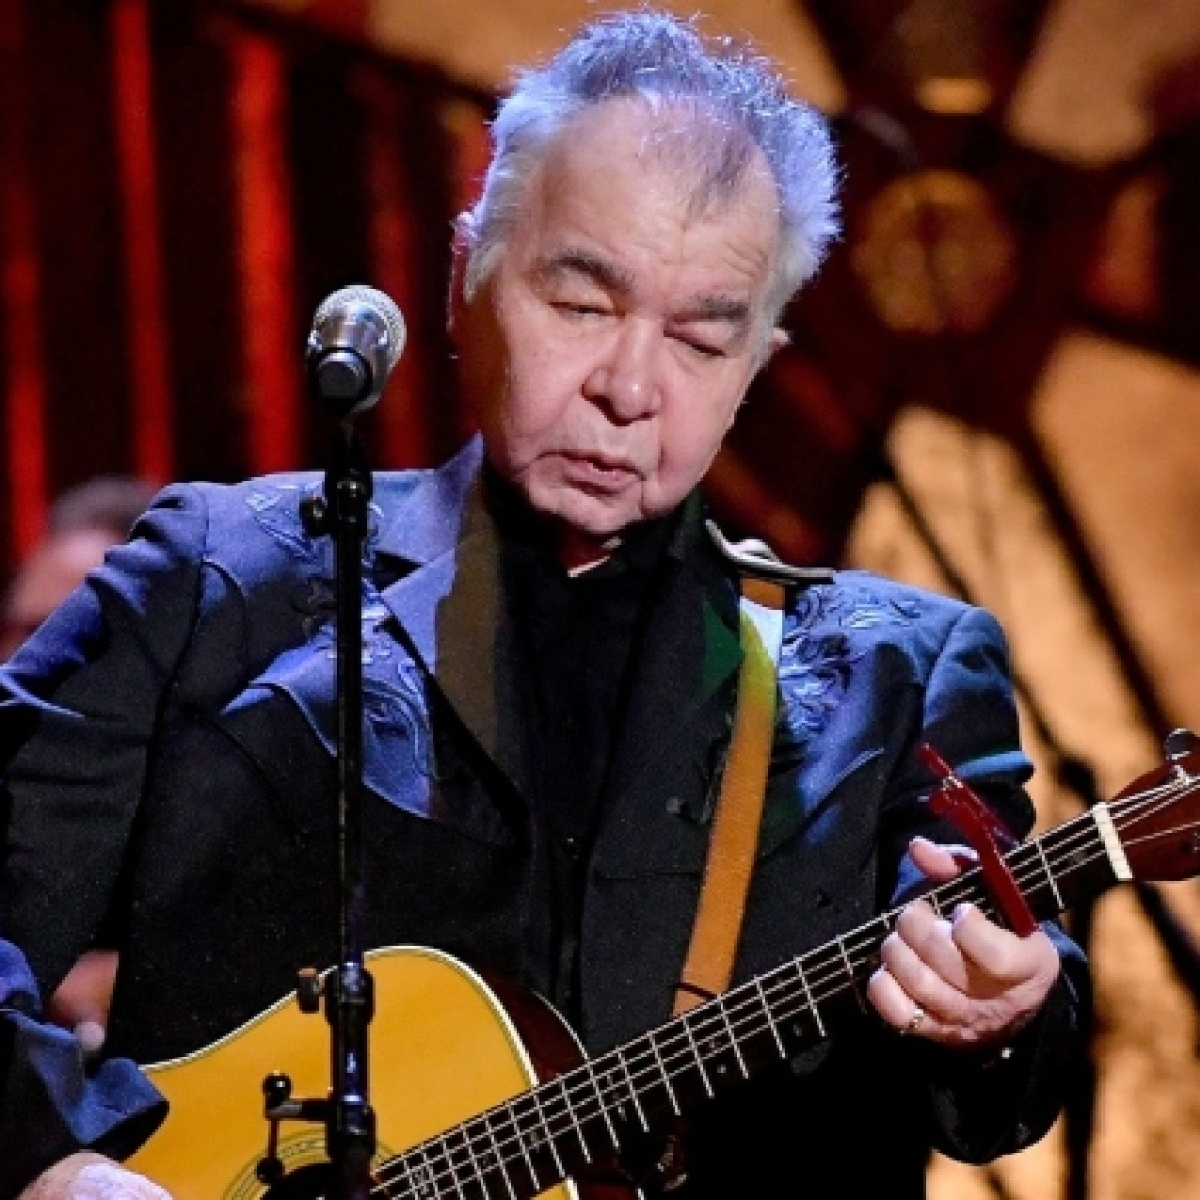 Country singer John Prine dies at 73 due to COVID-19 complications